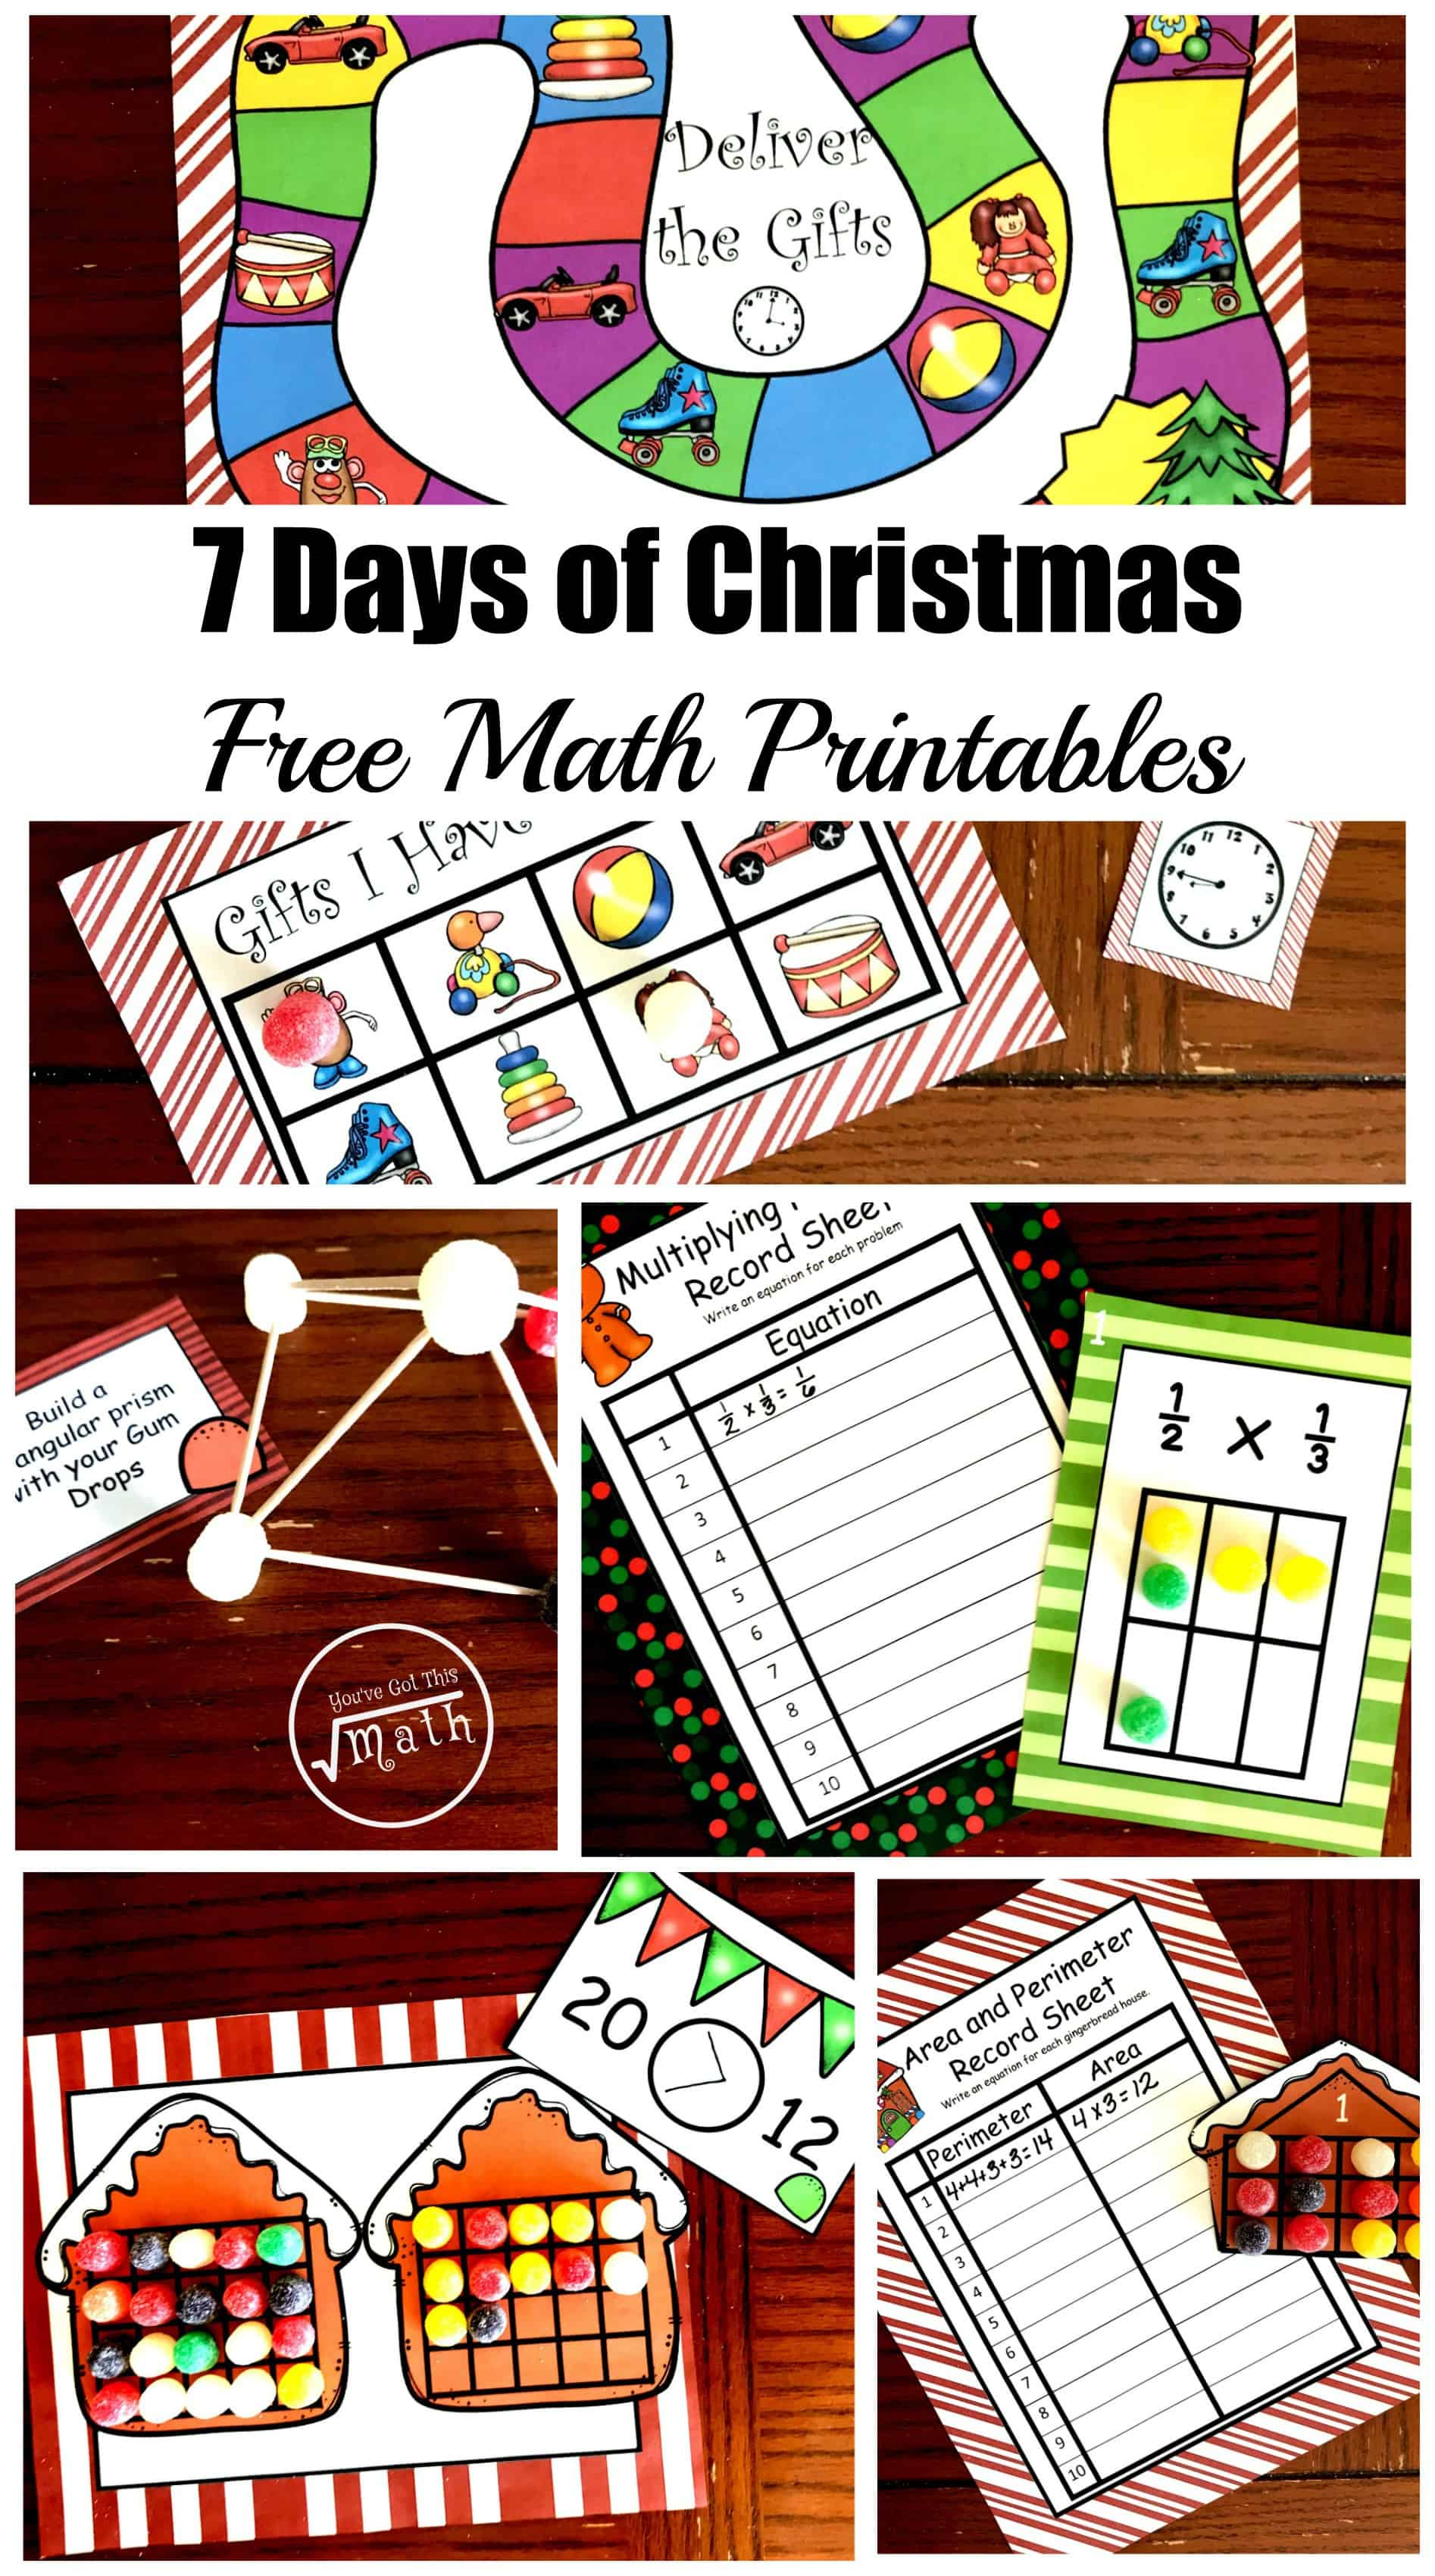 I want to say Merry Christmas to you by providing you with 7 days of free Christmas Math Printables for kindergarten through fifth grade.